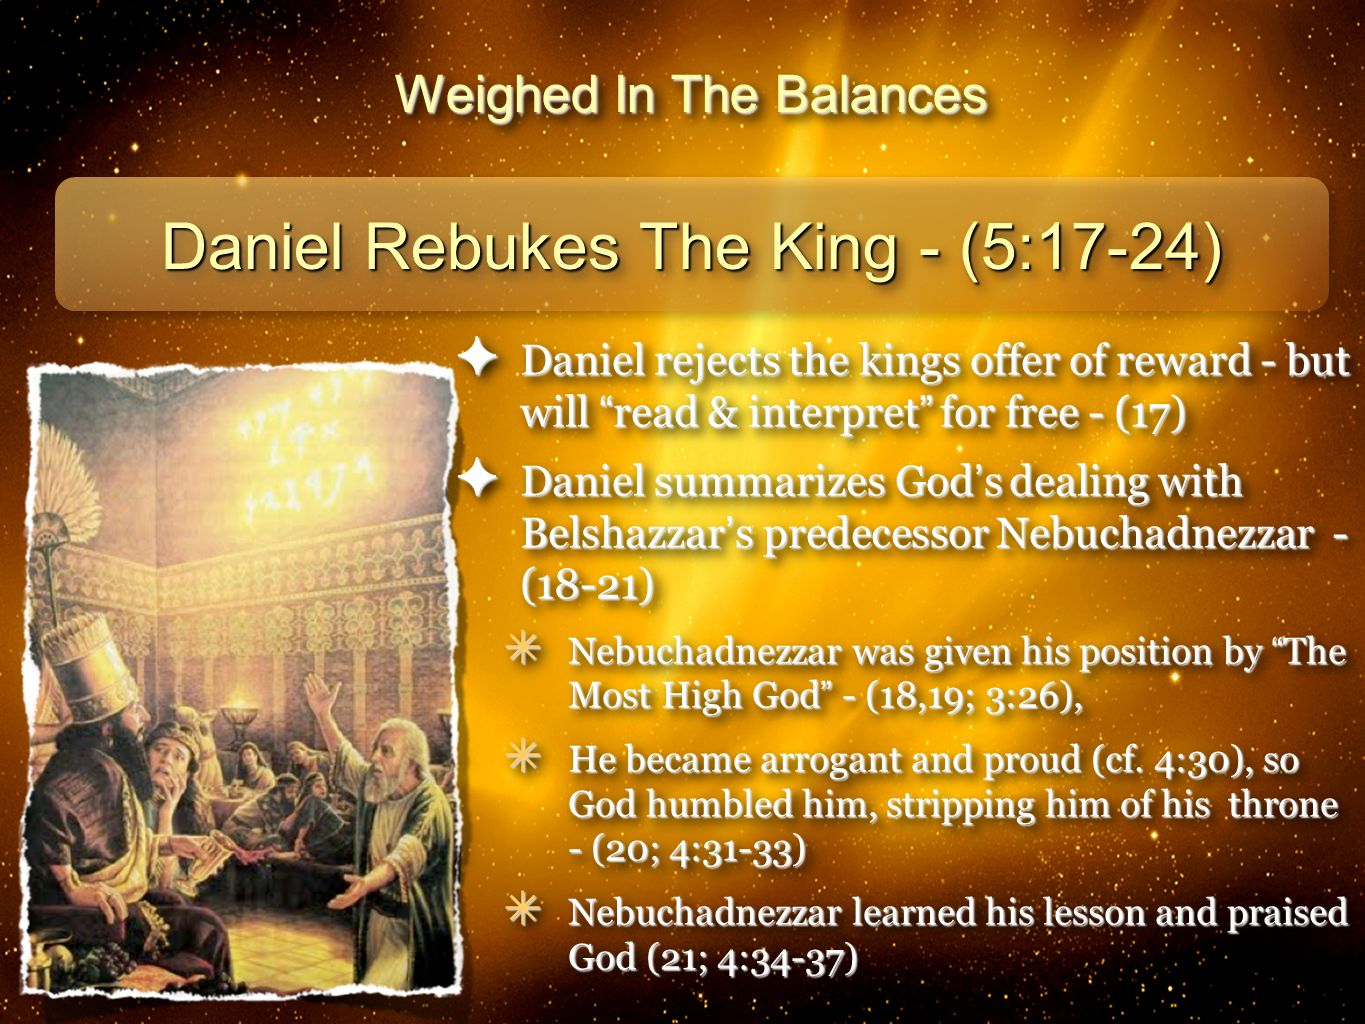 18 Weighed In The Balances Daniel Rebukes The King - (5:17-24) ✦ Daniel rejects the kings offer of reward - but will read & interpret for free - (17) ✦ Daniel summarizes God ' s dealing with Belshazzar ' s predecessor Nebuchadnezzar - (18-21) ✴ Nebuchadnezzar was given his position by The Most High God - (18,19; 3:26), ✴ He became arrogant and proud (cf.